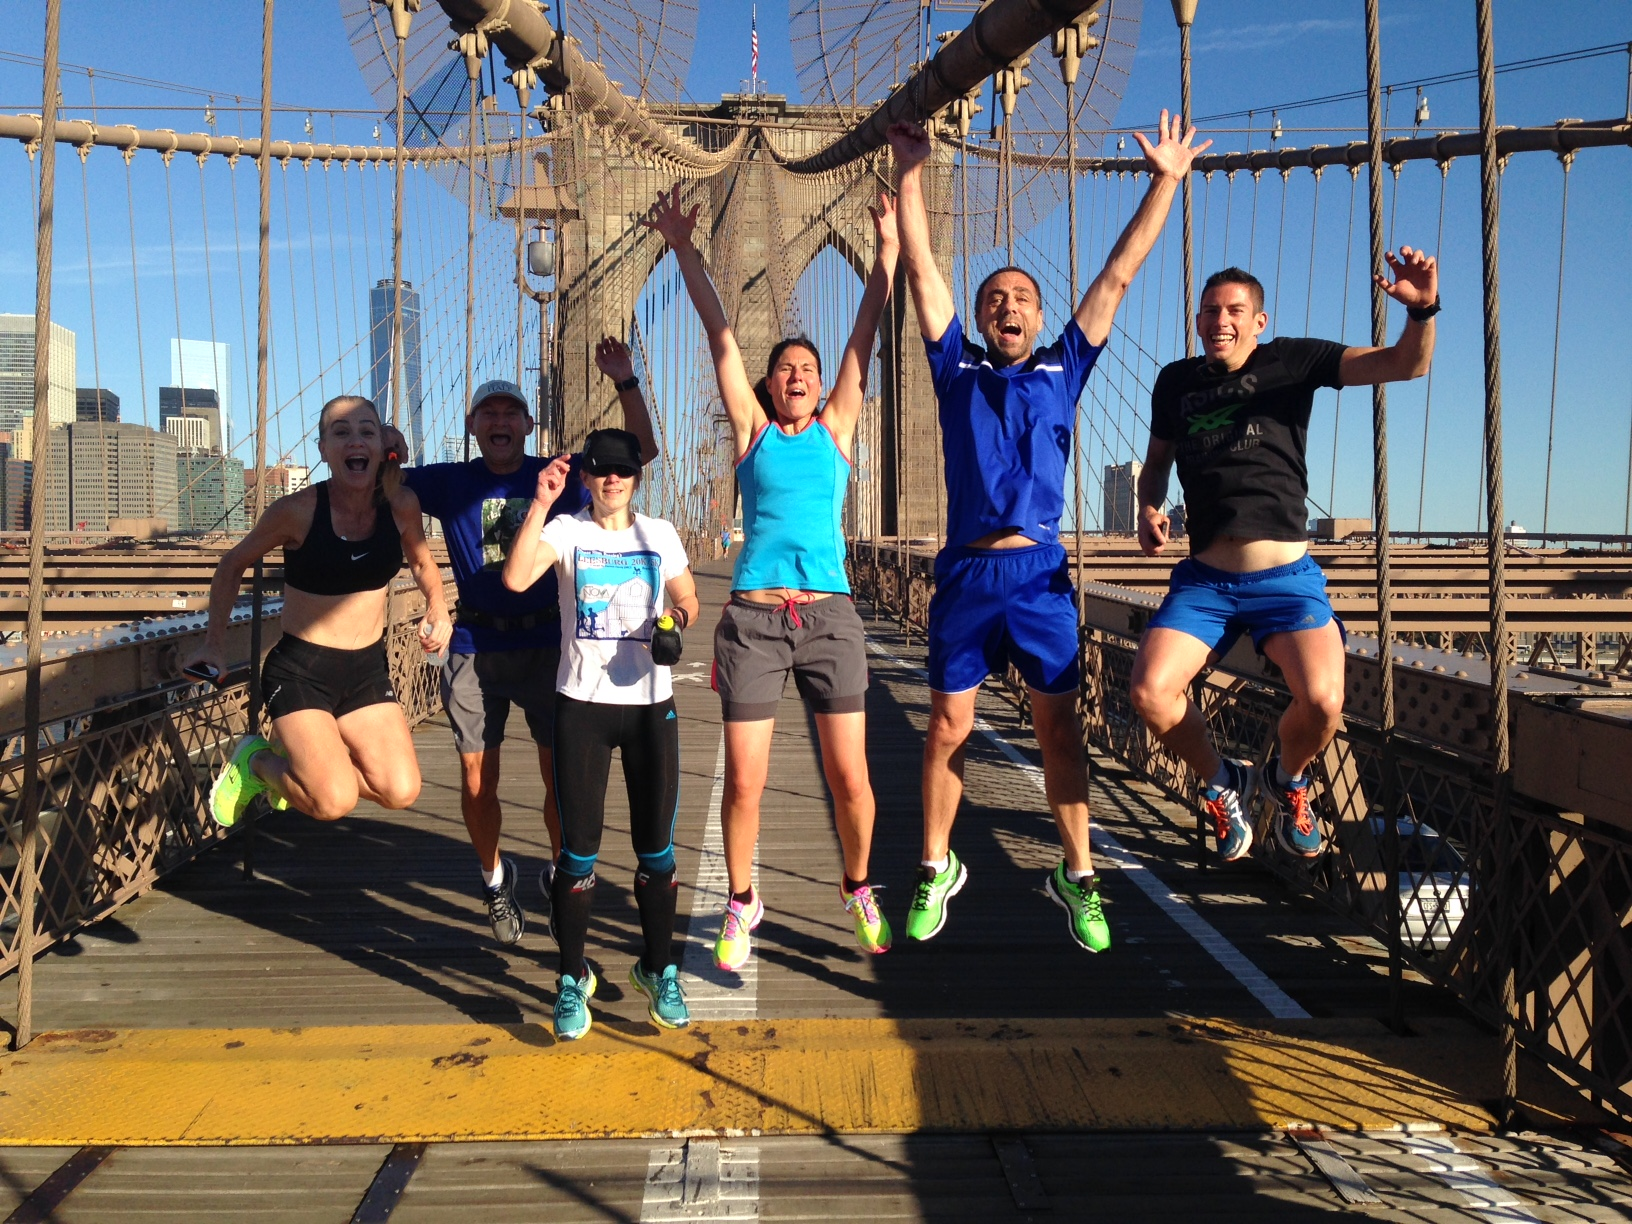 Get the team together experience some of NYC's most iconic neighborhoods and places. This group is pictured on the Brooklyn Bridge.